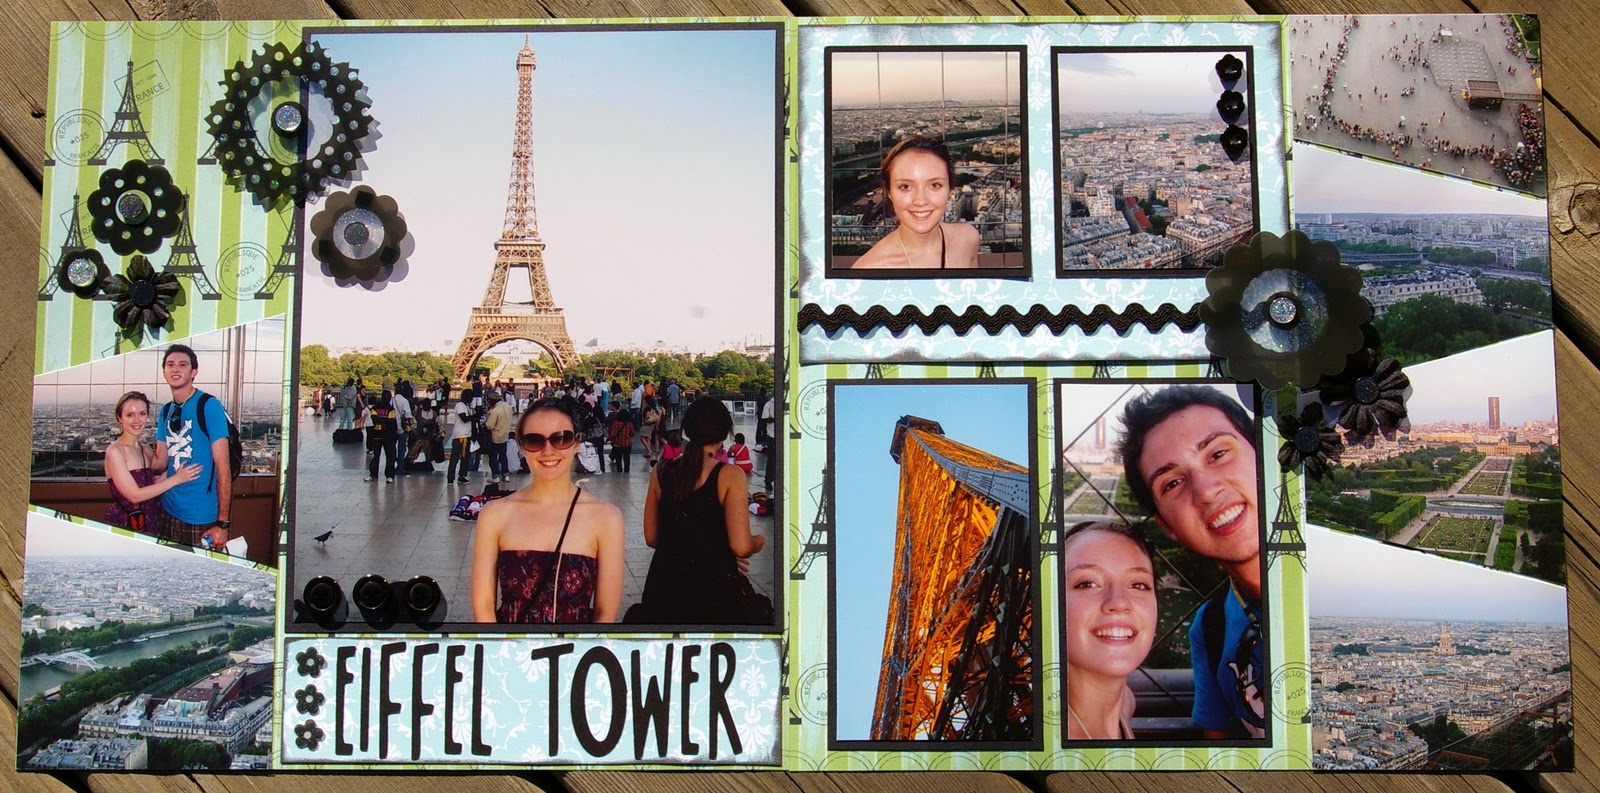 Europe scrapbook ideas - This Layout Is Of The Eiffel Tower This Was The One Location Chelsea Was Really Looking Forward To See She Took Some Great Pics That Made This Layout